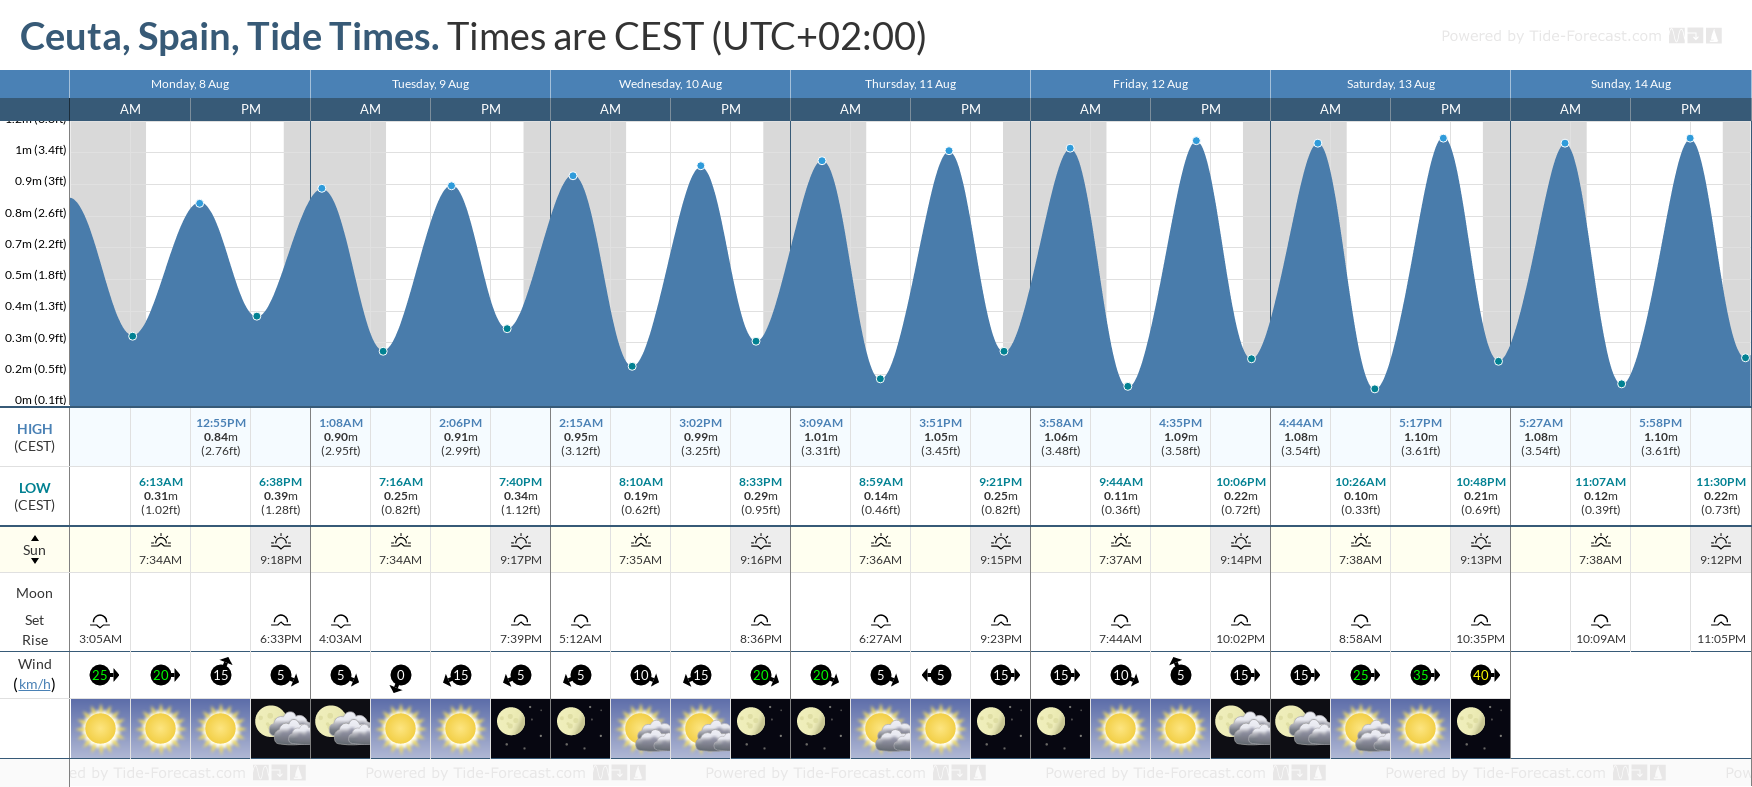 Ceuta, Spain Tide Chart including high and low tide tide times for the next 7 days